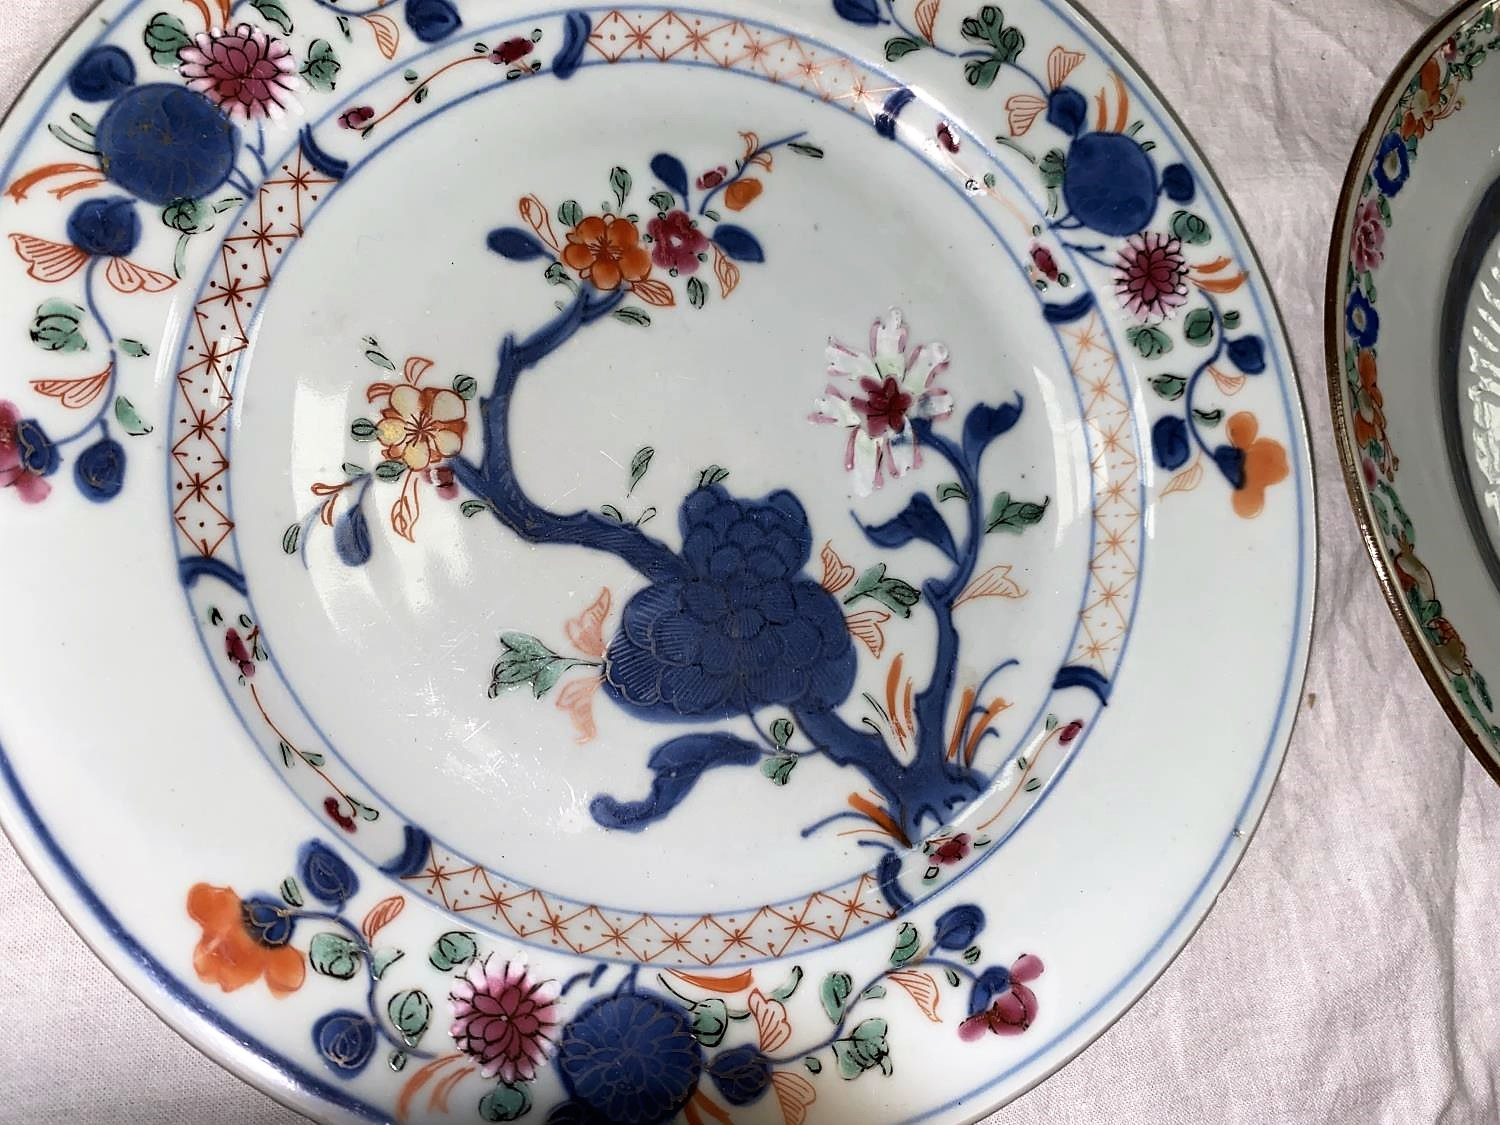 An 18th century Chinese dish with central incised decoration and polychrome decorated floral rim, d. - Image 2 of 3